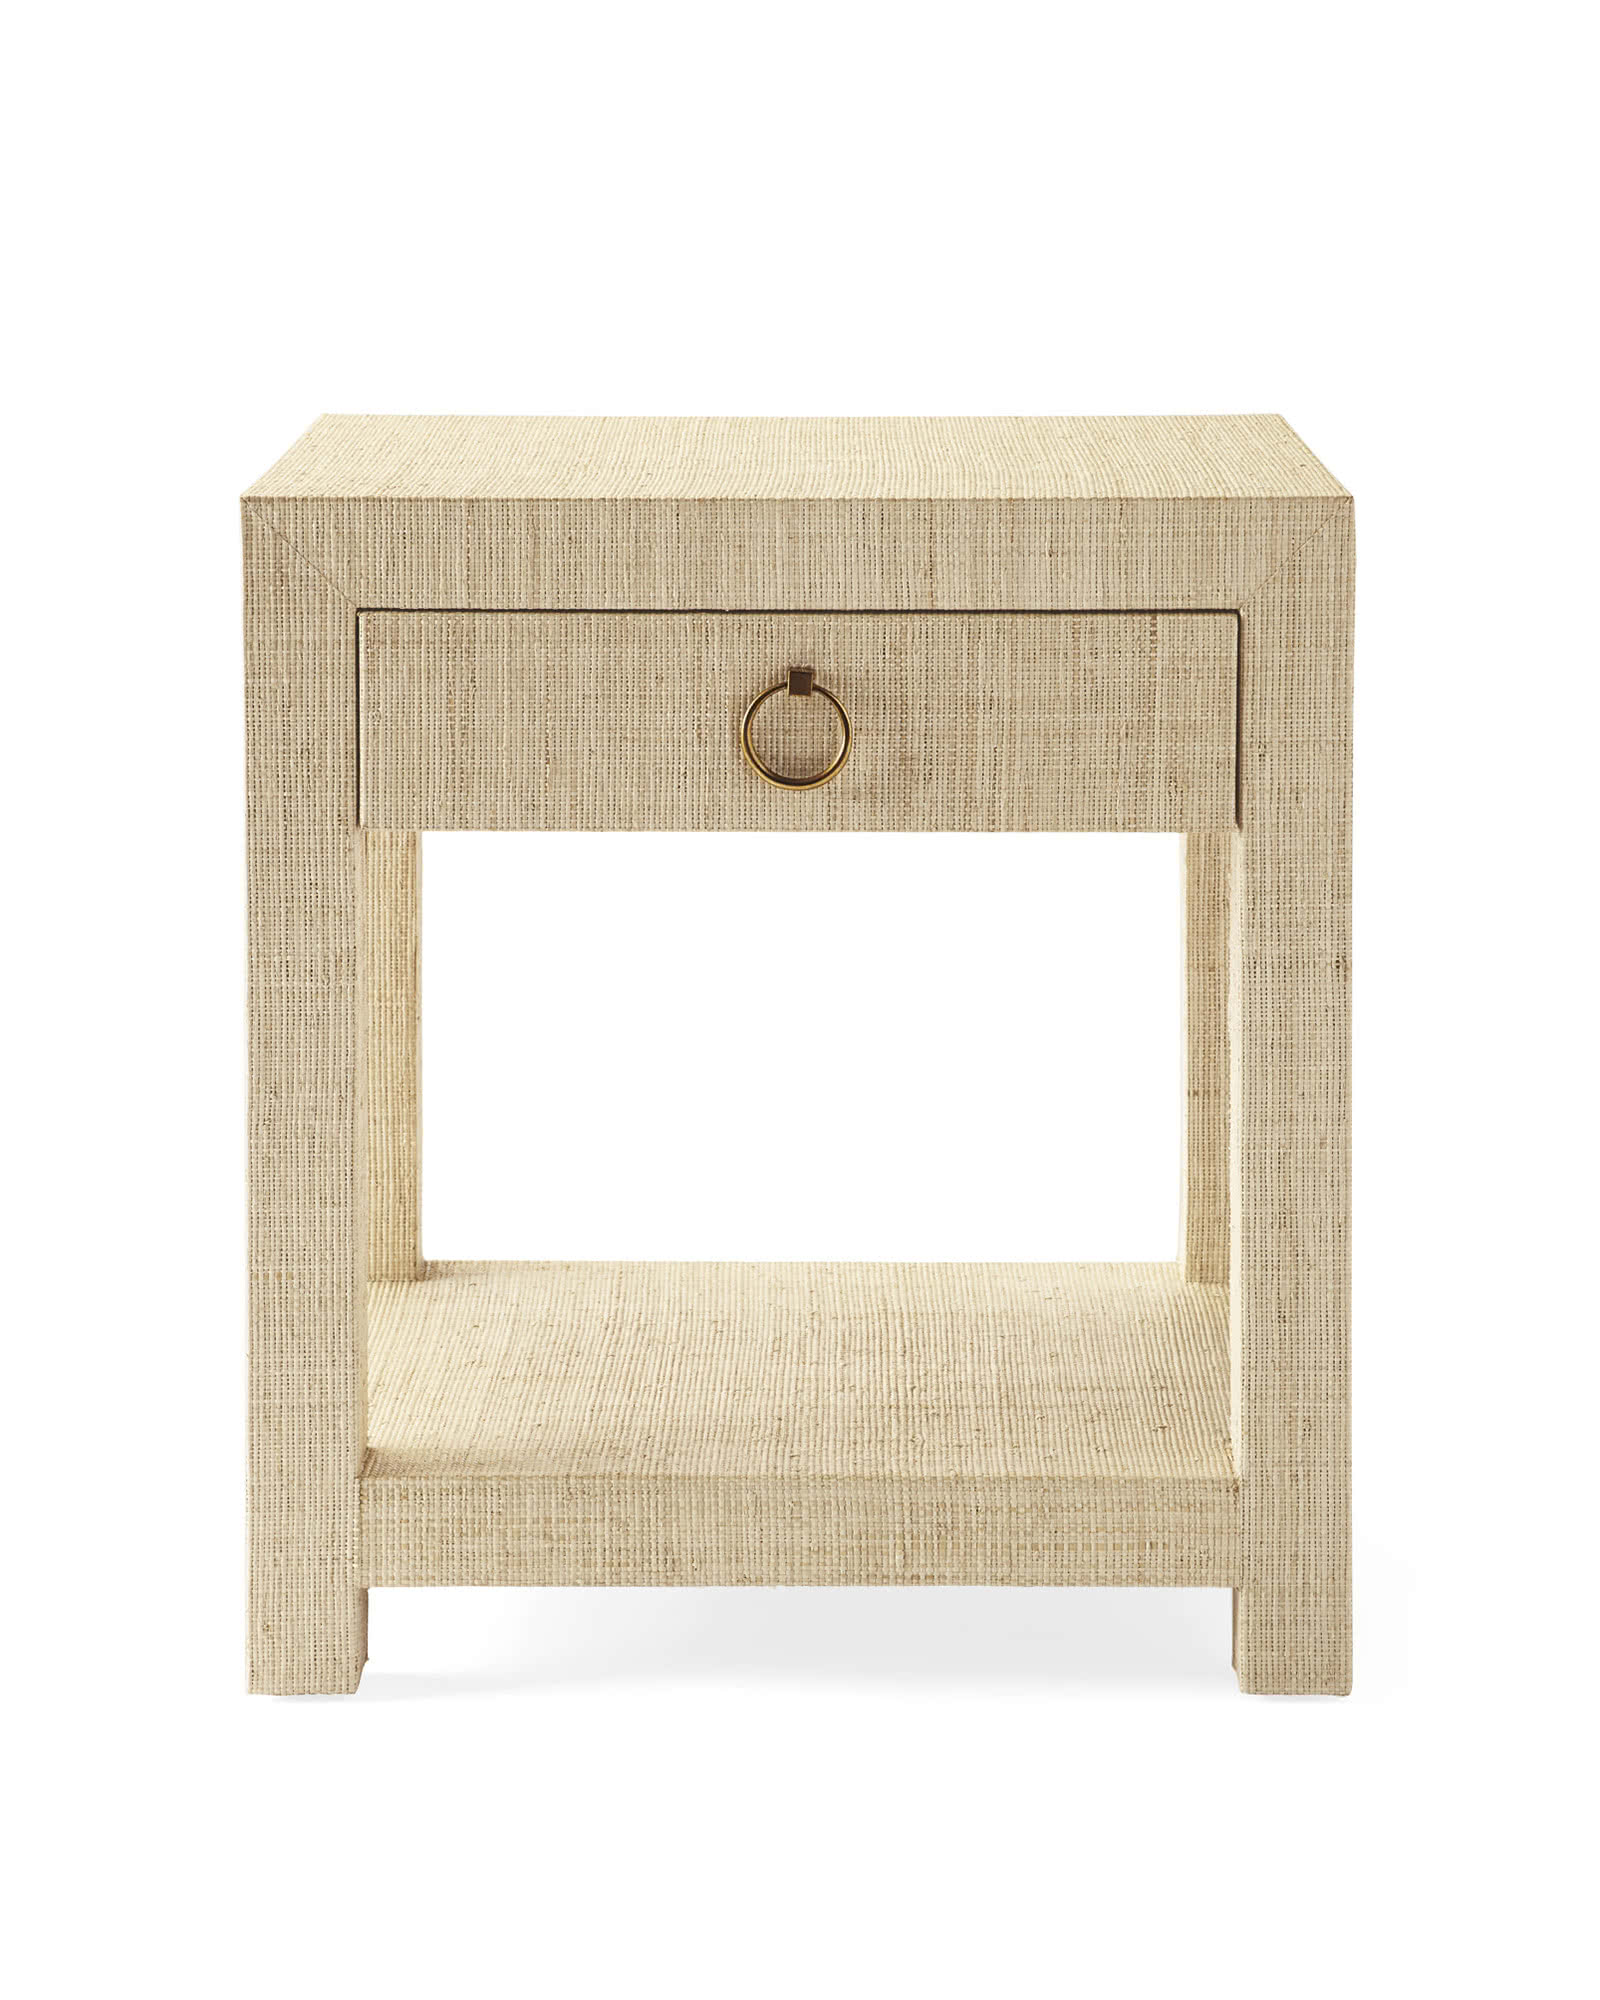 Blake 1-Drawer Nightstand, Natural